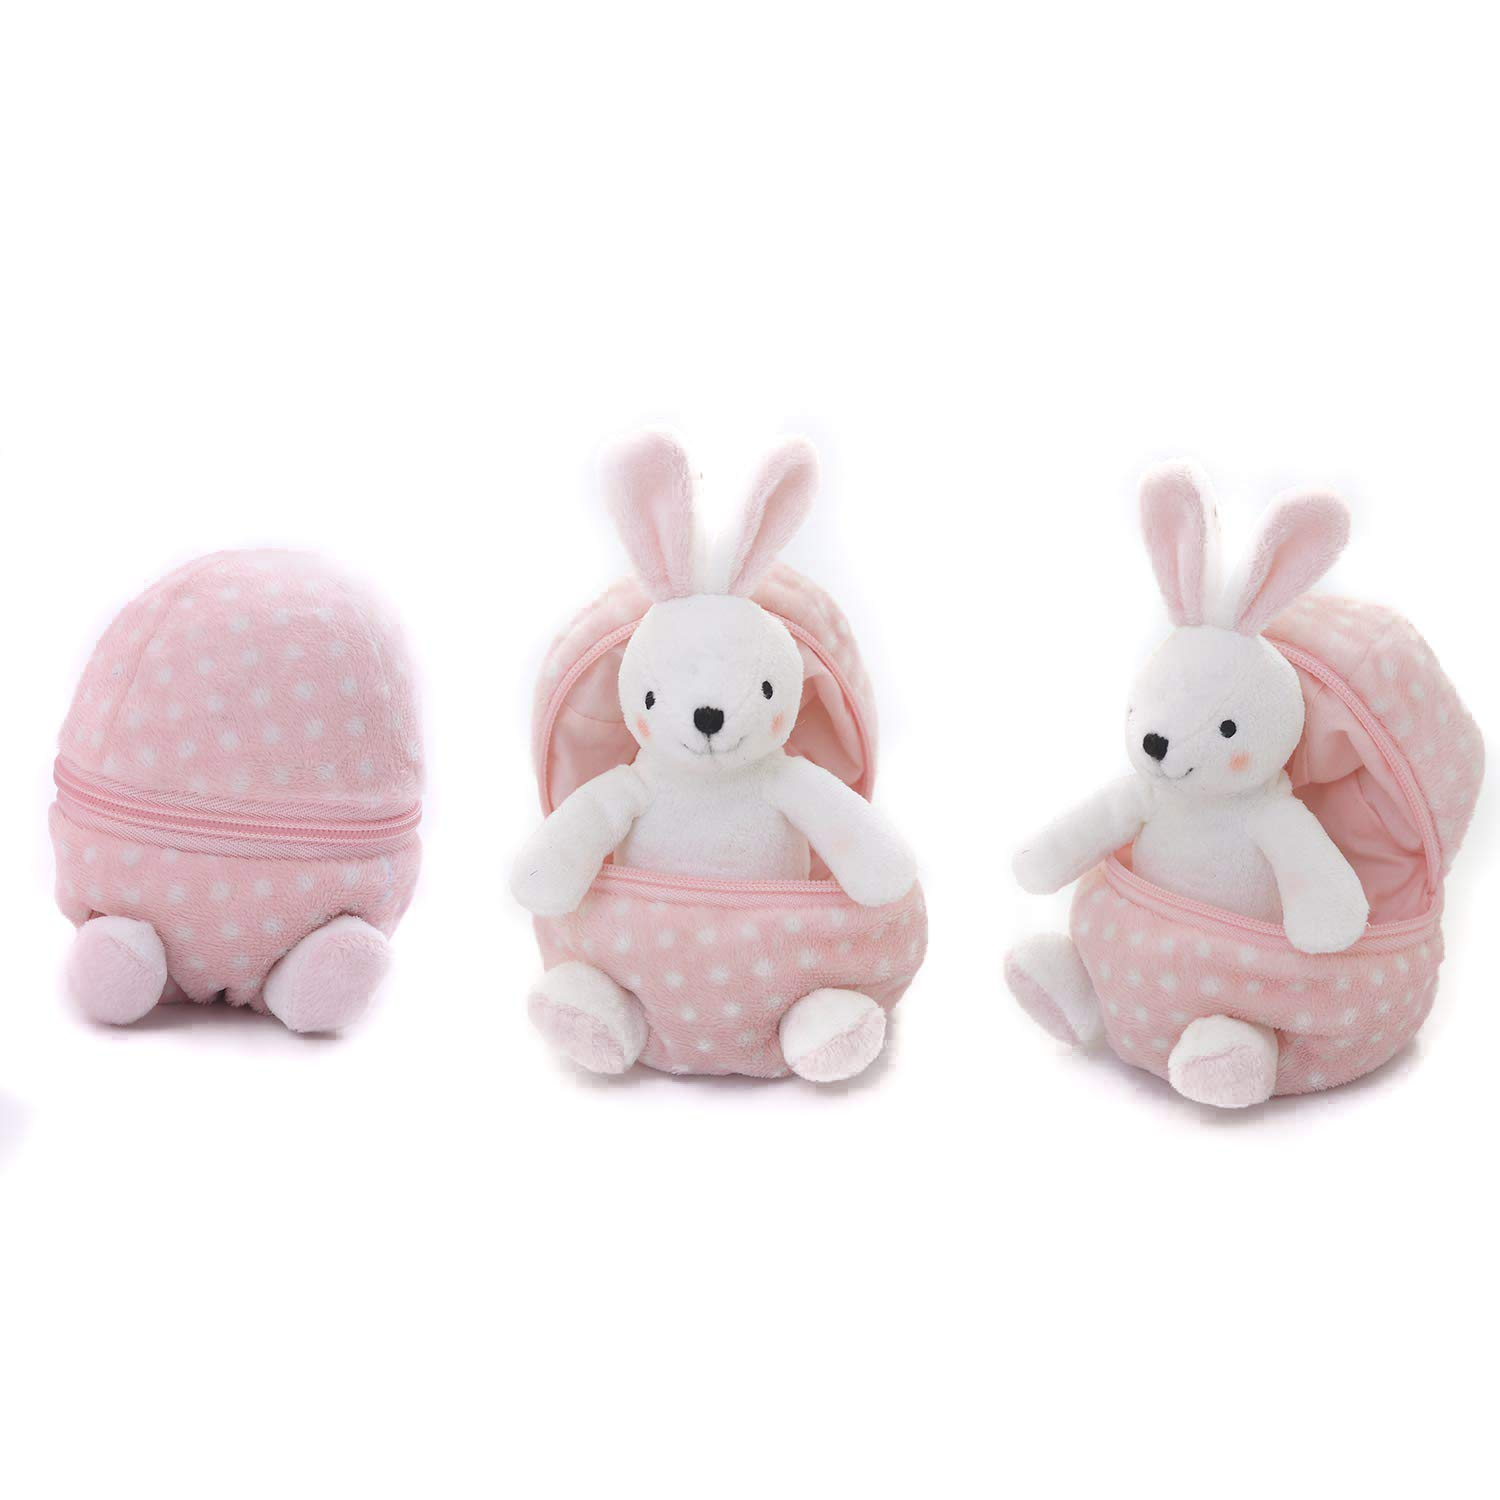 Plushland Plush Stuffed Animal 6 Inches Surprise Zip Up Egg Hideaway | Cute, Pink Pastel and Polka Dot Easter Colors | Spring Inspired Gift for Girls and Boys Birthday Mother's Day (Easter Bunny)